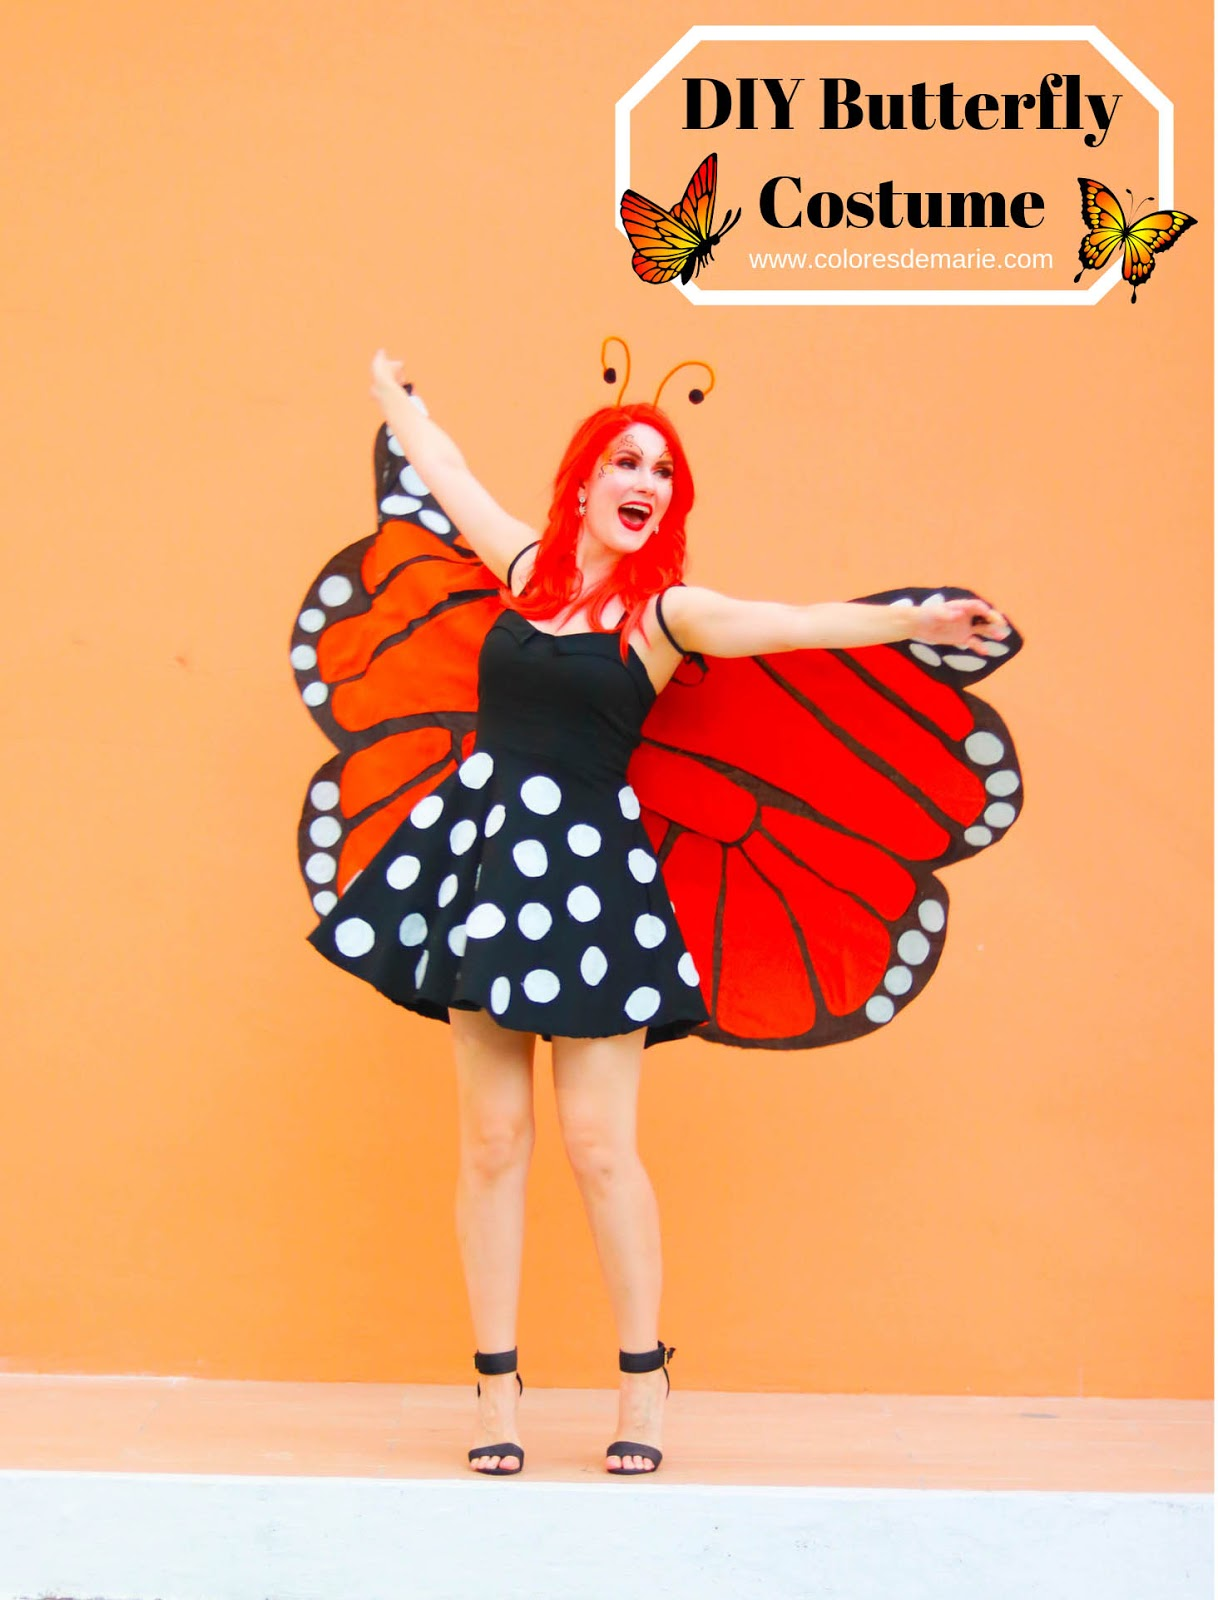 DIY Homemade Butterfly Costume Tutorial - Easy and cheap!